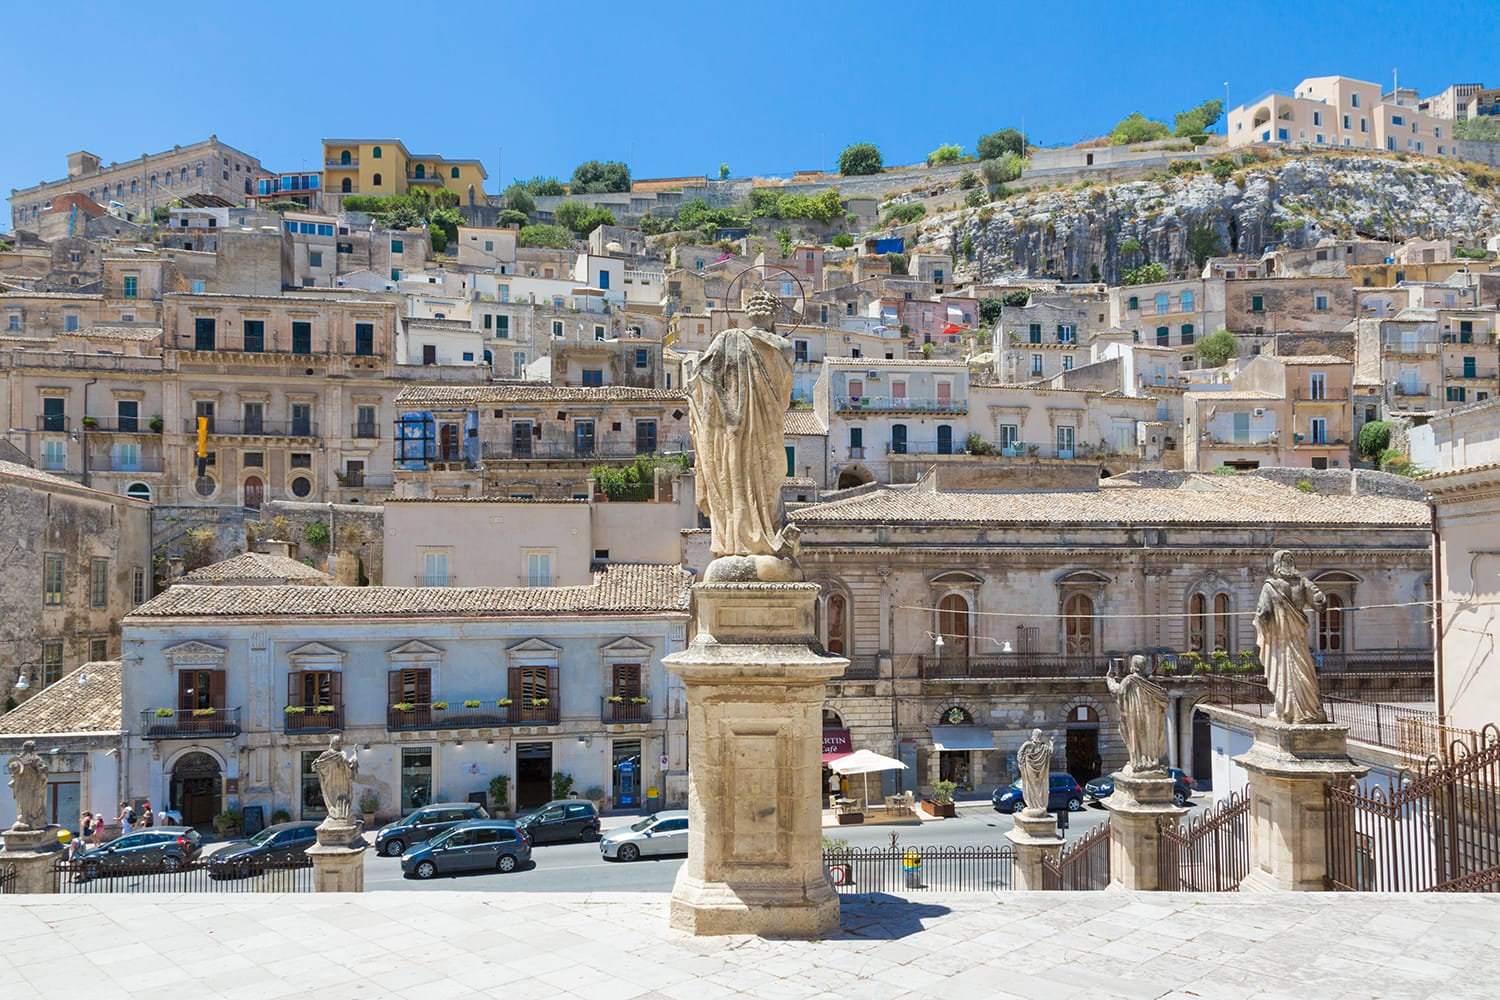 Modica (Sicily, Italy) - View of the ancient town